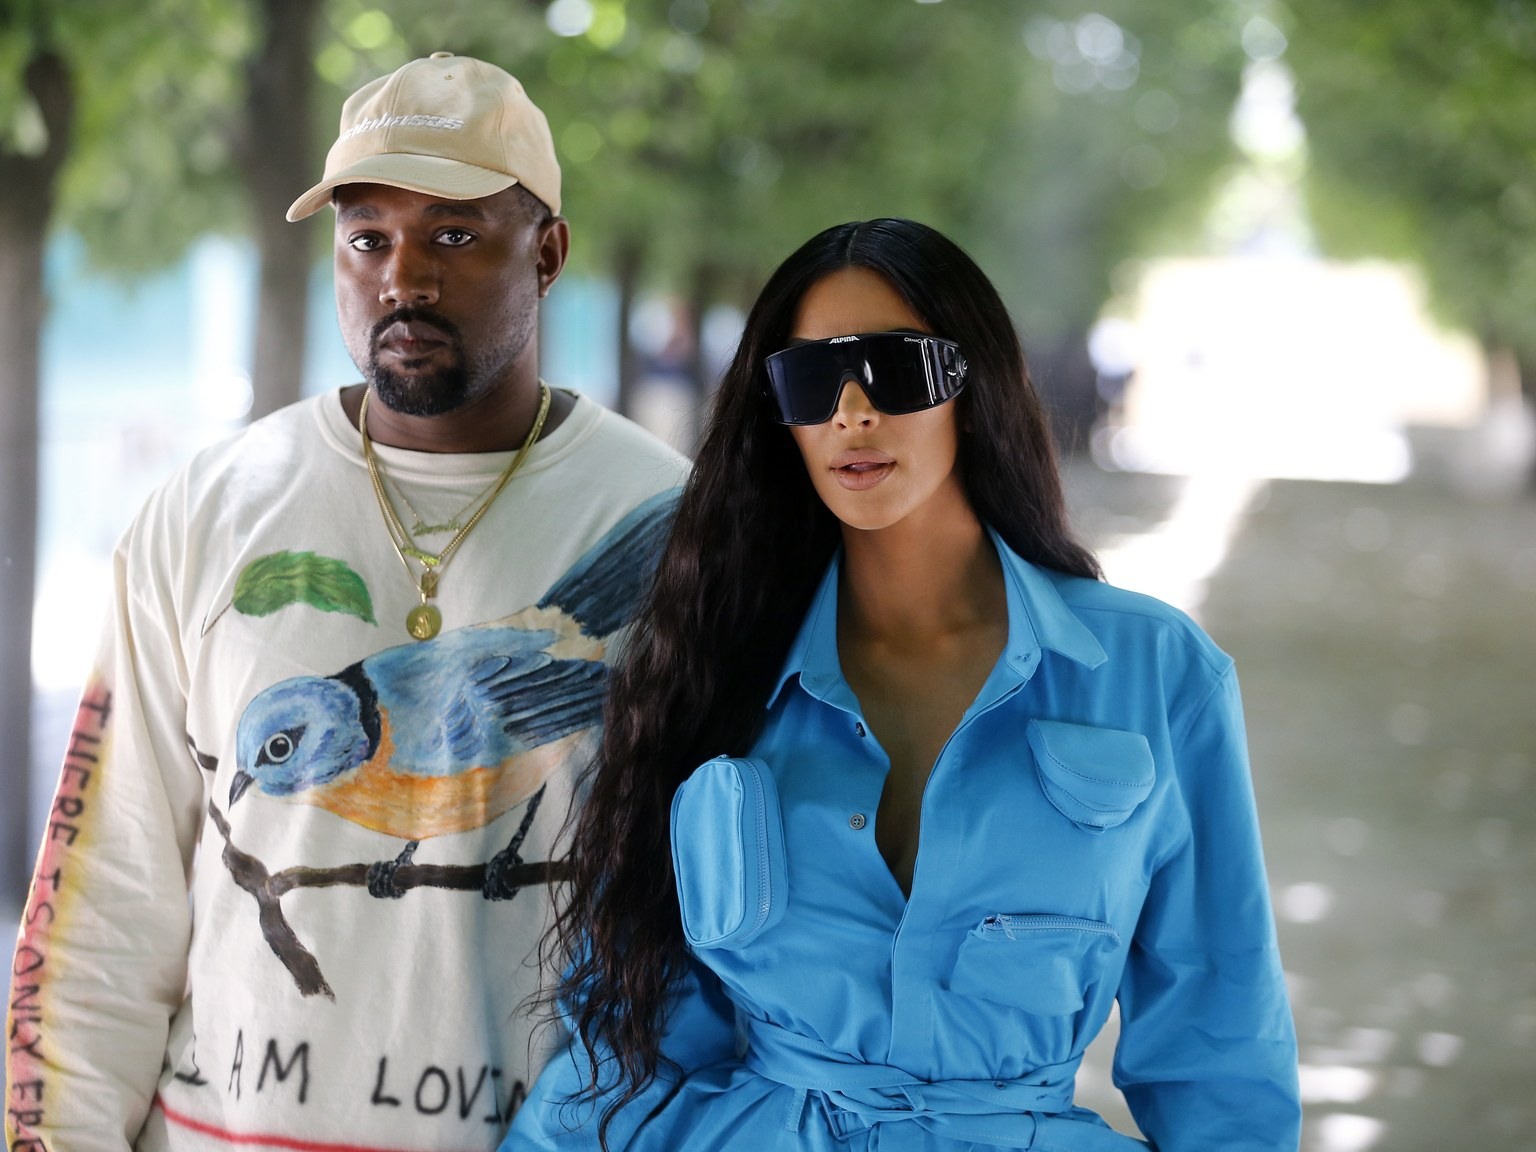 Are Kim Kardashian and Kanye West Still Married